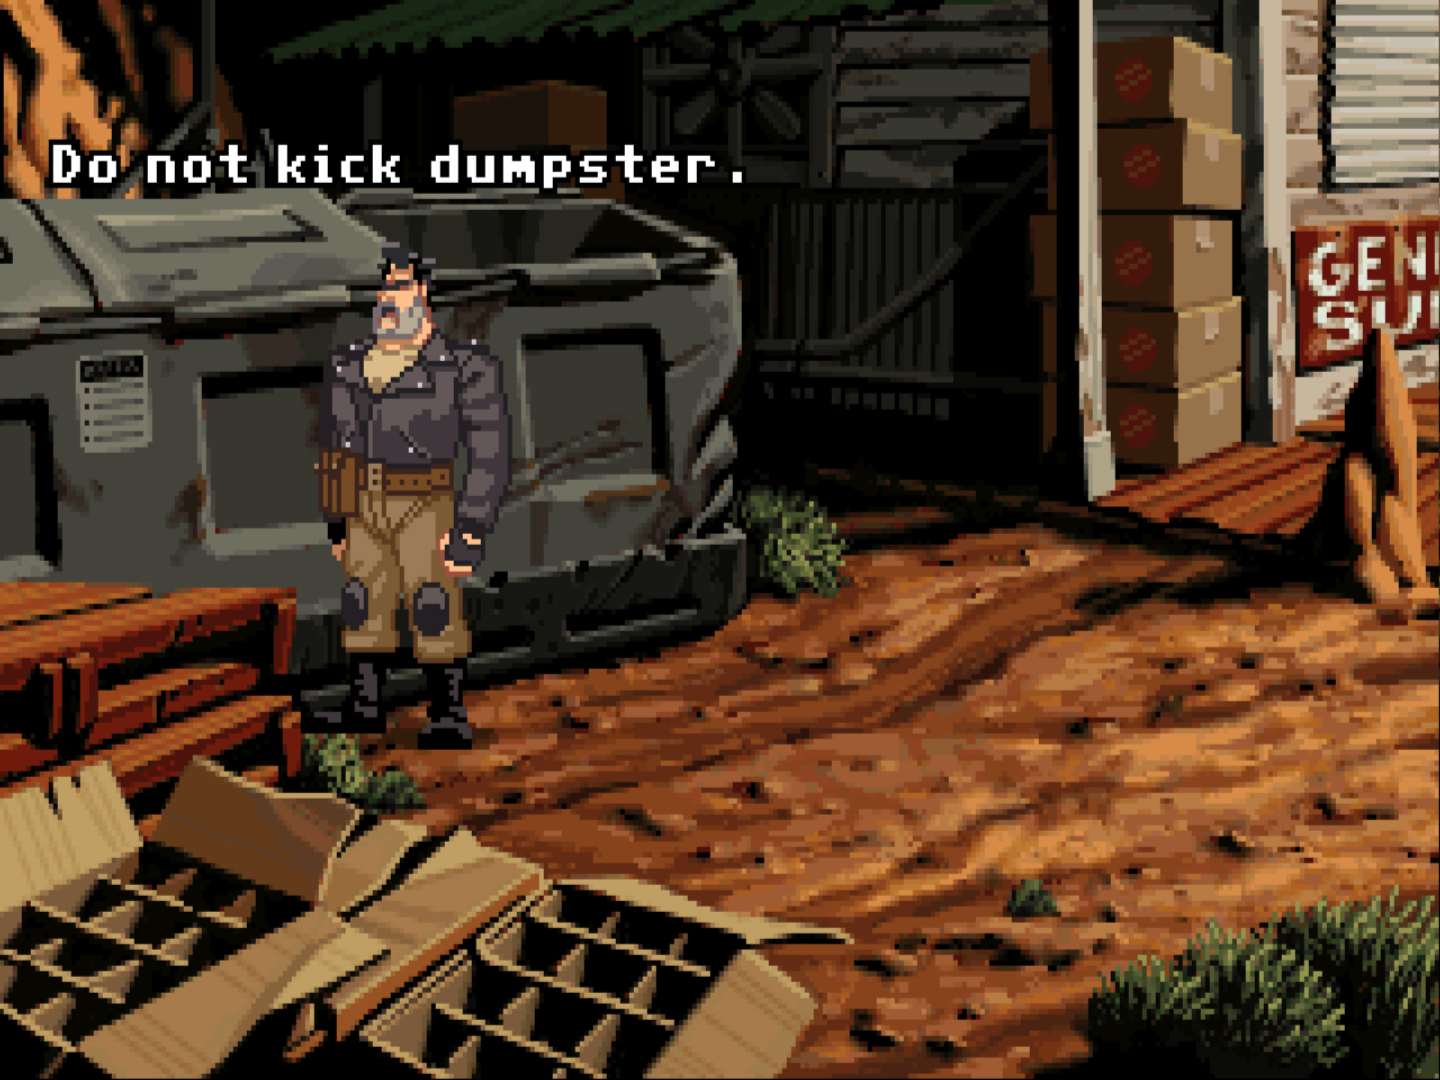 Full Throttle screenshot 1.